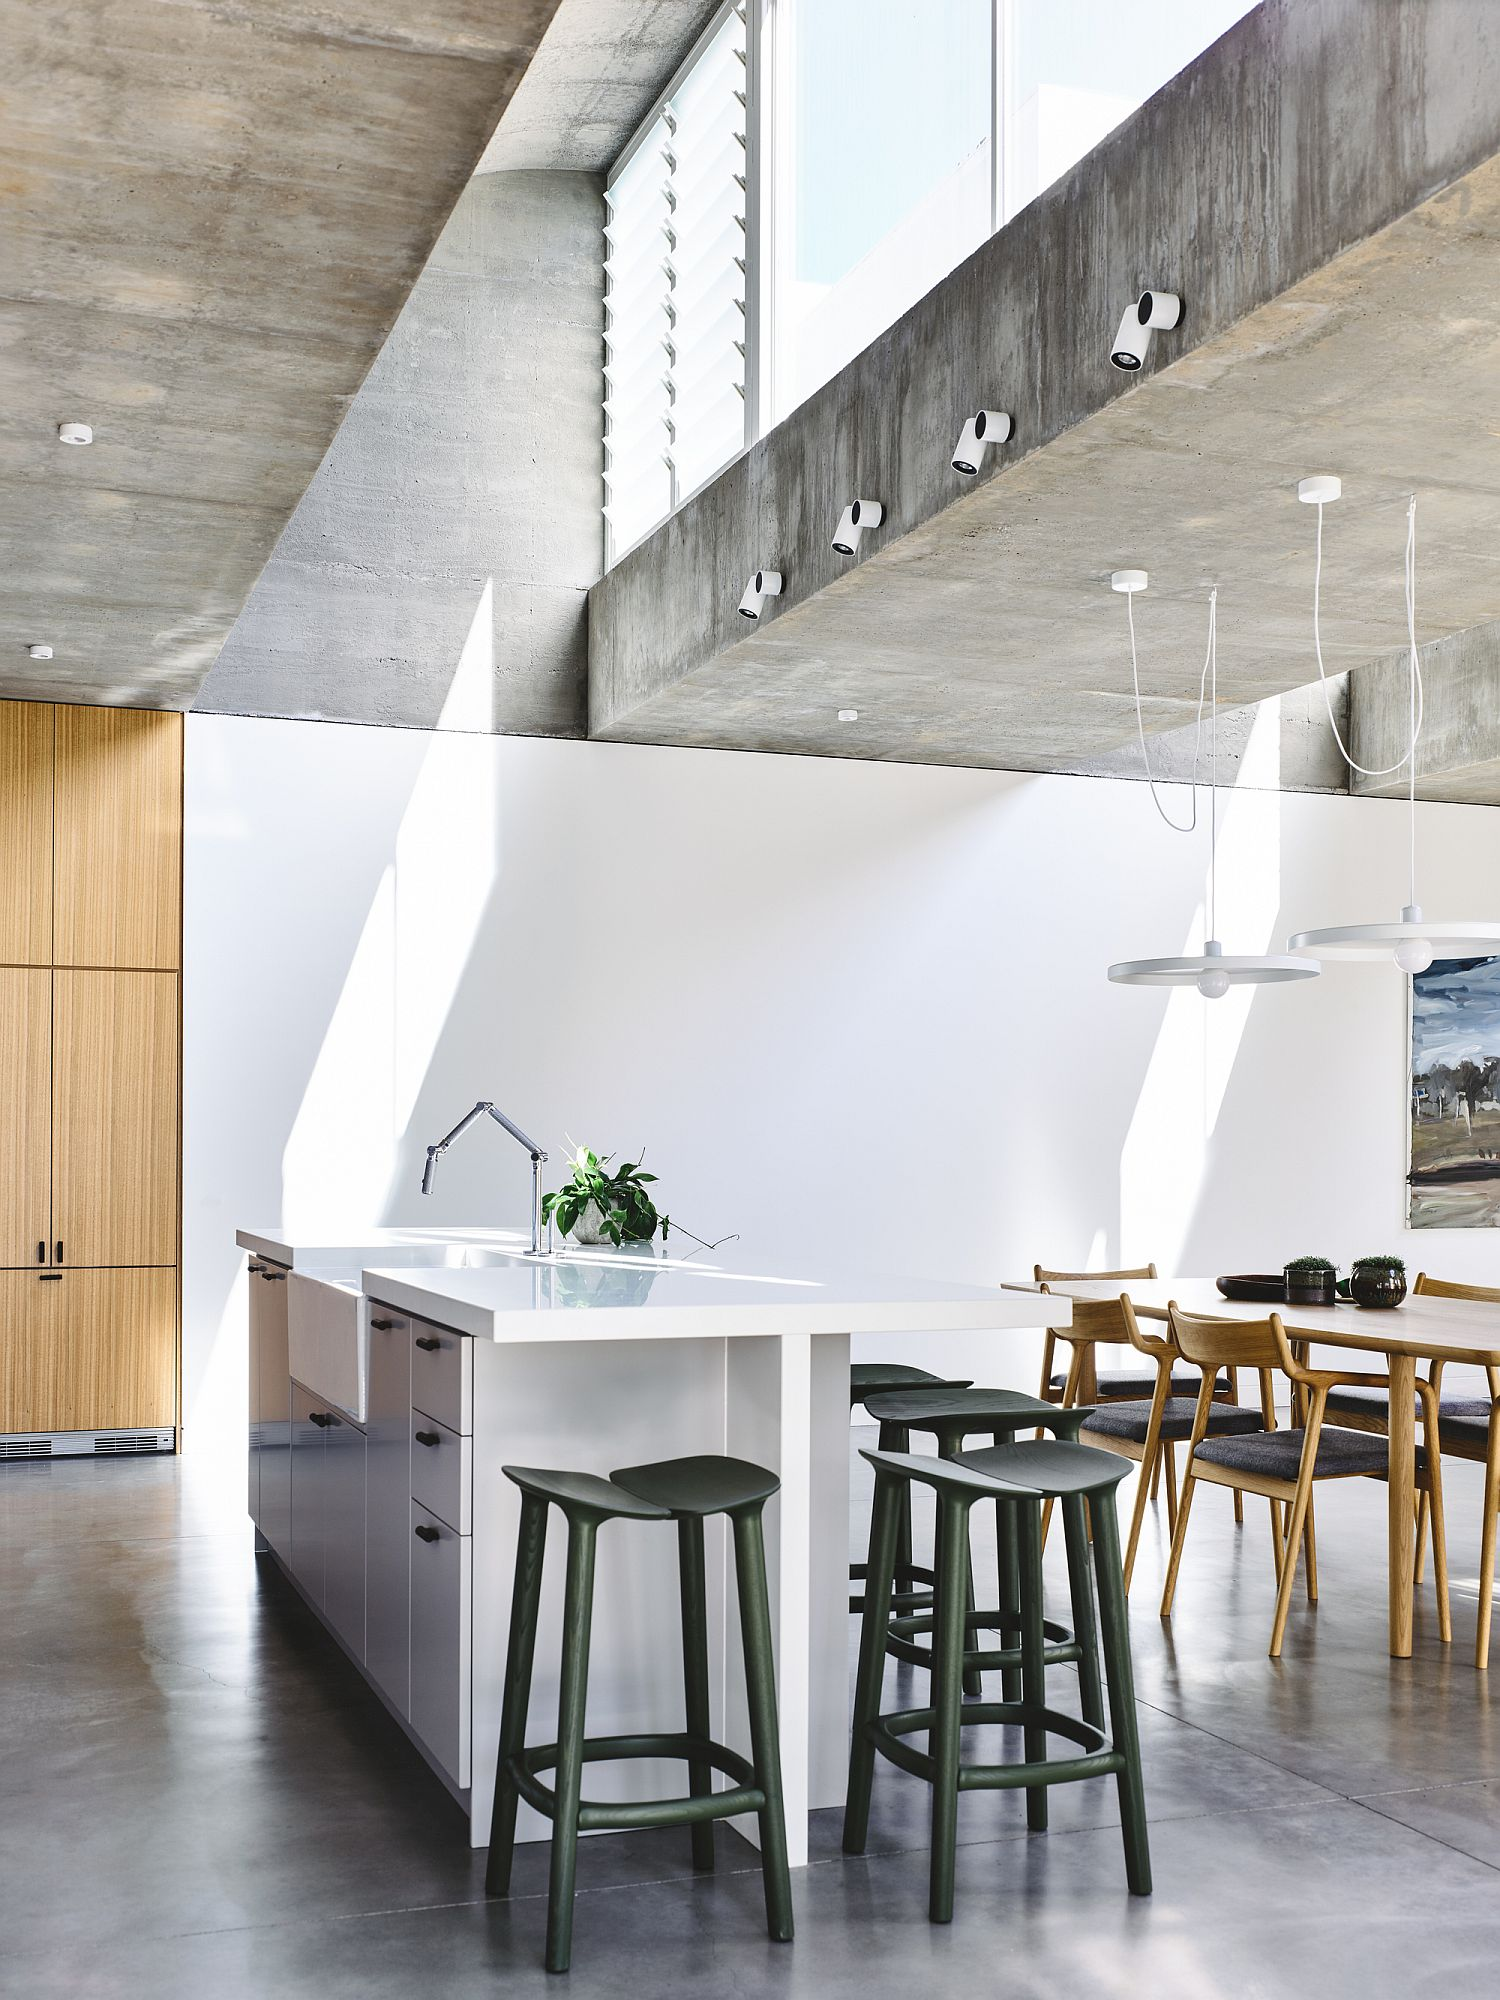 Polished-concrete-floor-and-exposed-concrete-ceilings-give-the-interior-a-minimal-appeal